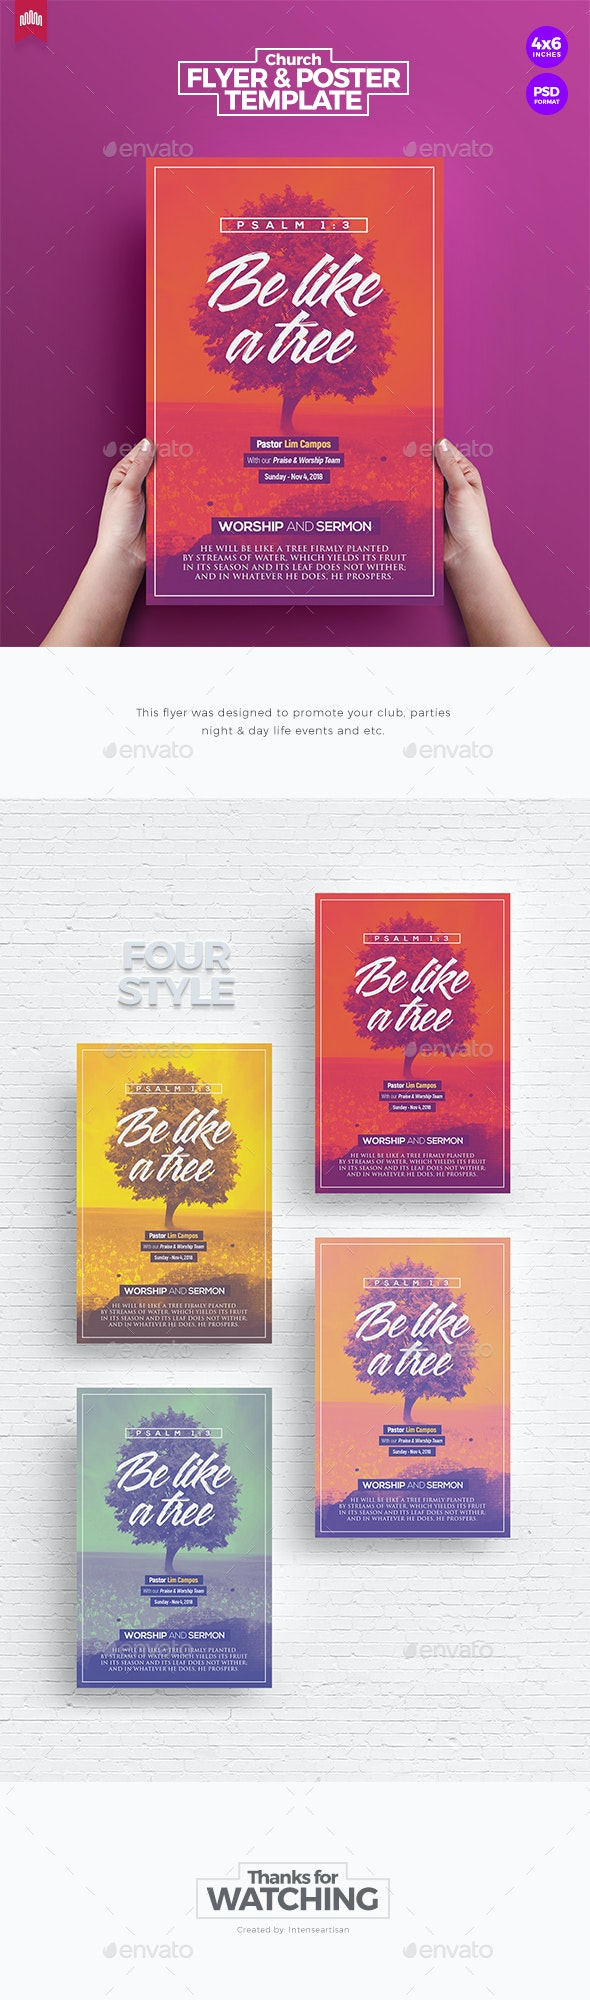 Be Like A Tree - Church Flyer Template - Church Flyers